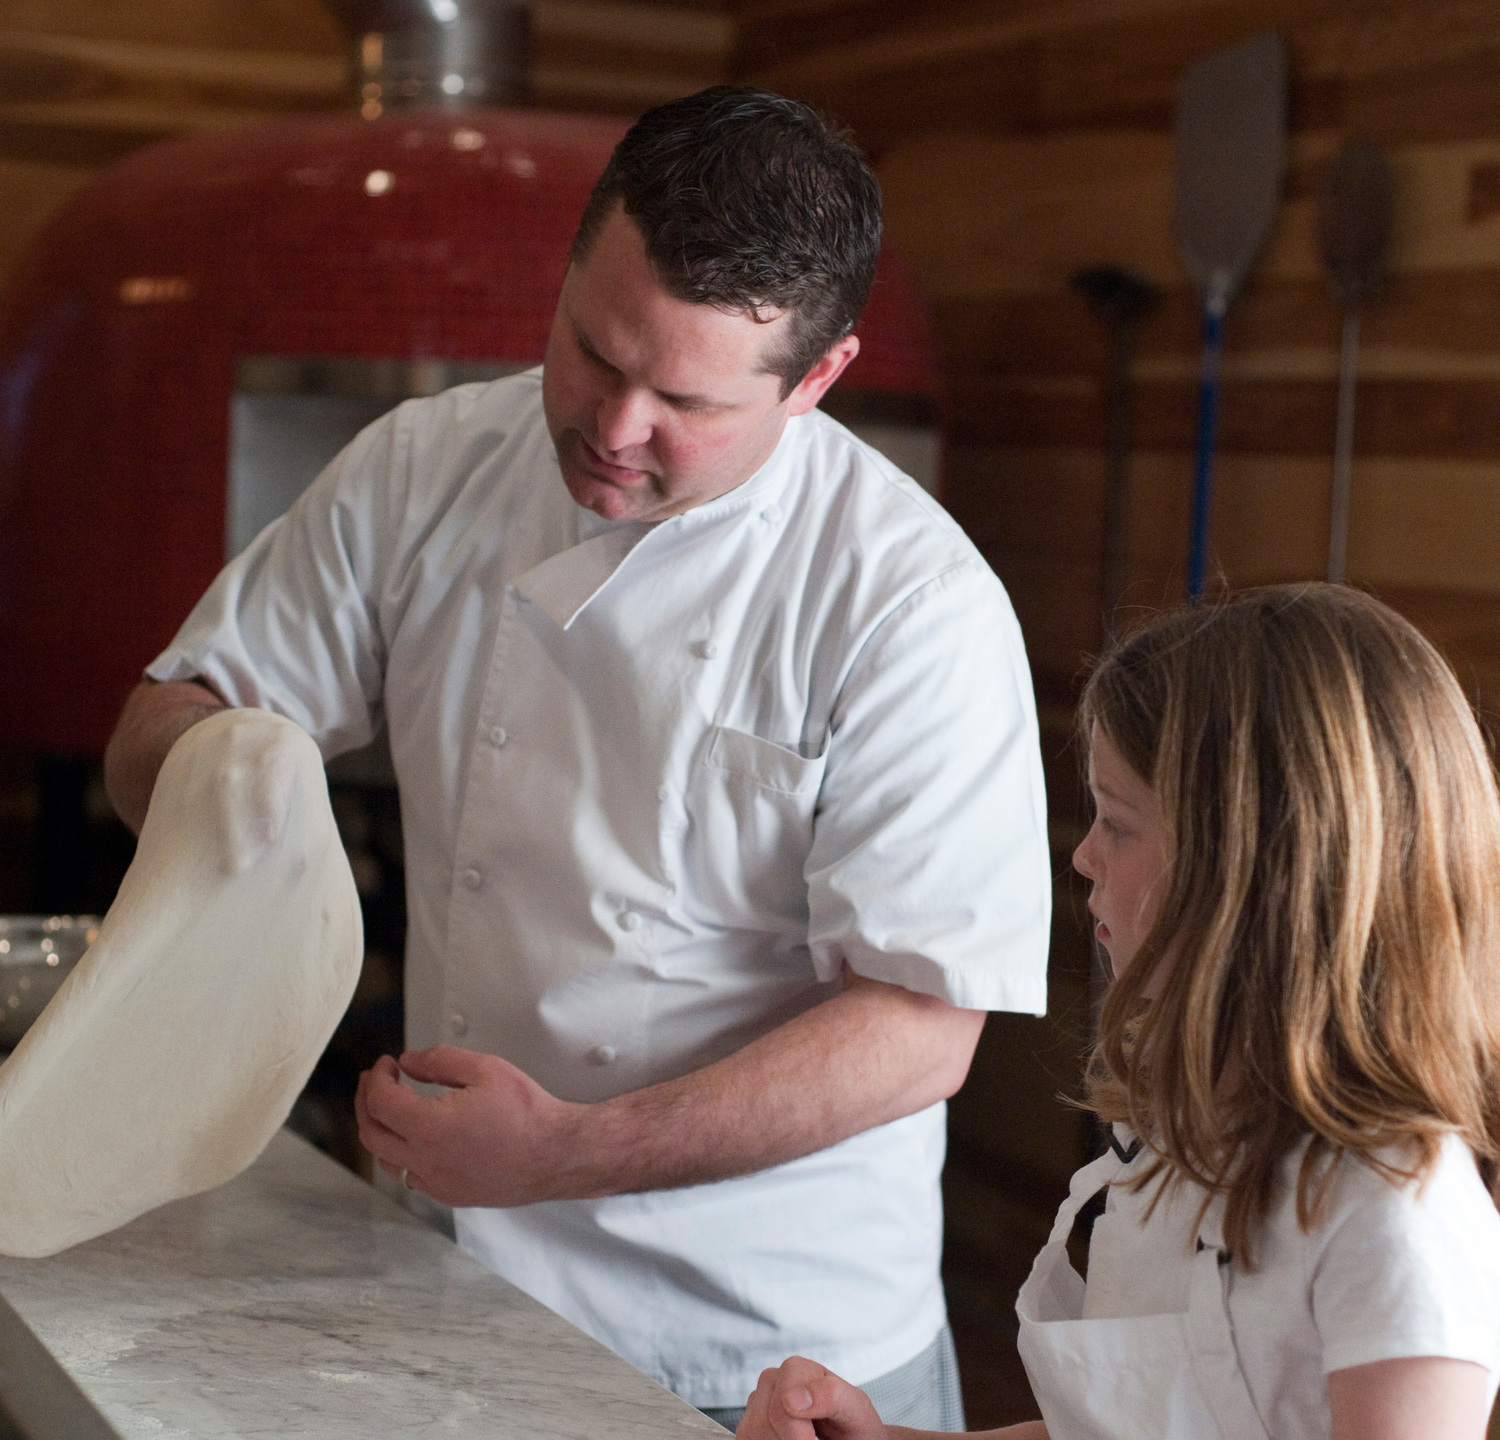 When it comes to cooking, Chef Brian Goewey knows a thing or two about it. He also understands that the more one can plan out a menu in advance the better. By applying this simple principle, it gives one more time to cook and enjoy it. Planning ahead, being passionate about cooking, having entrepreneurial foresight and drive are the key ingredients that have helped him achieve success in every restaurant venture he partakes in. Chef Goewey has been involved in as well as partially responsible for the opening of over 50 restaurants, ranging from quick-serve style to high-end 5-star restaurants.